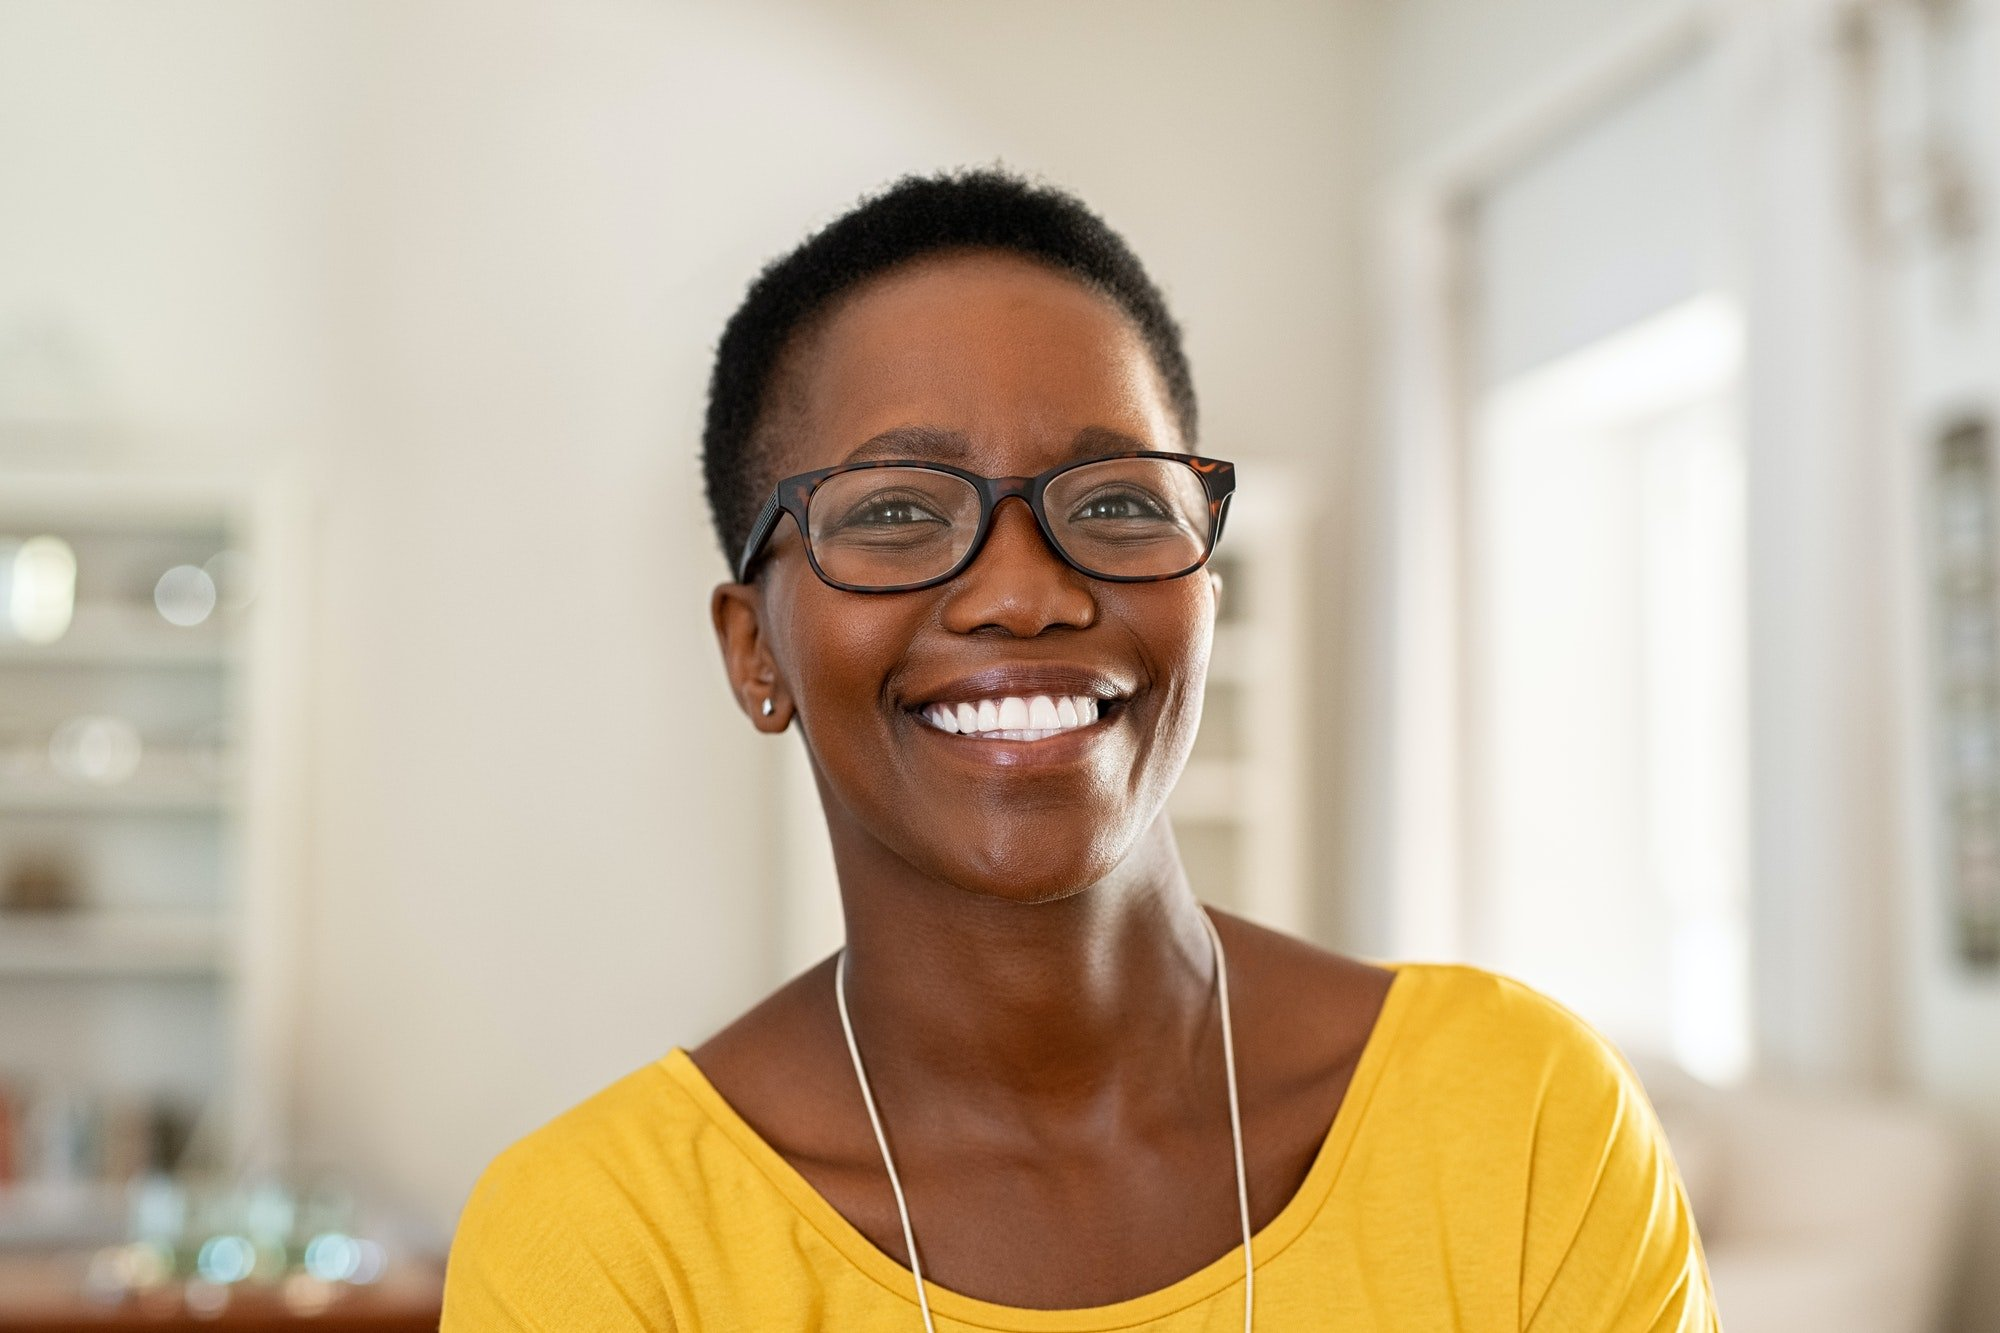 Young woman wearing spectacles